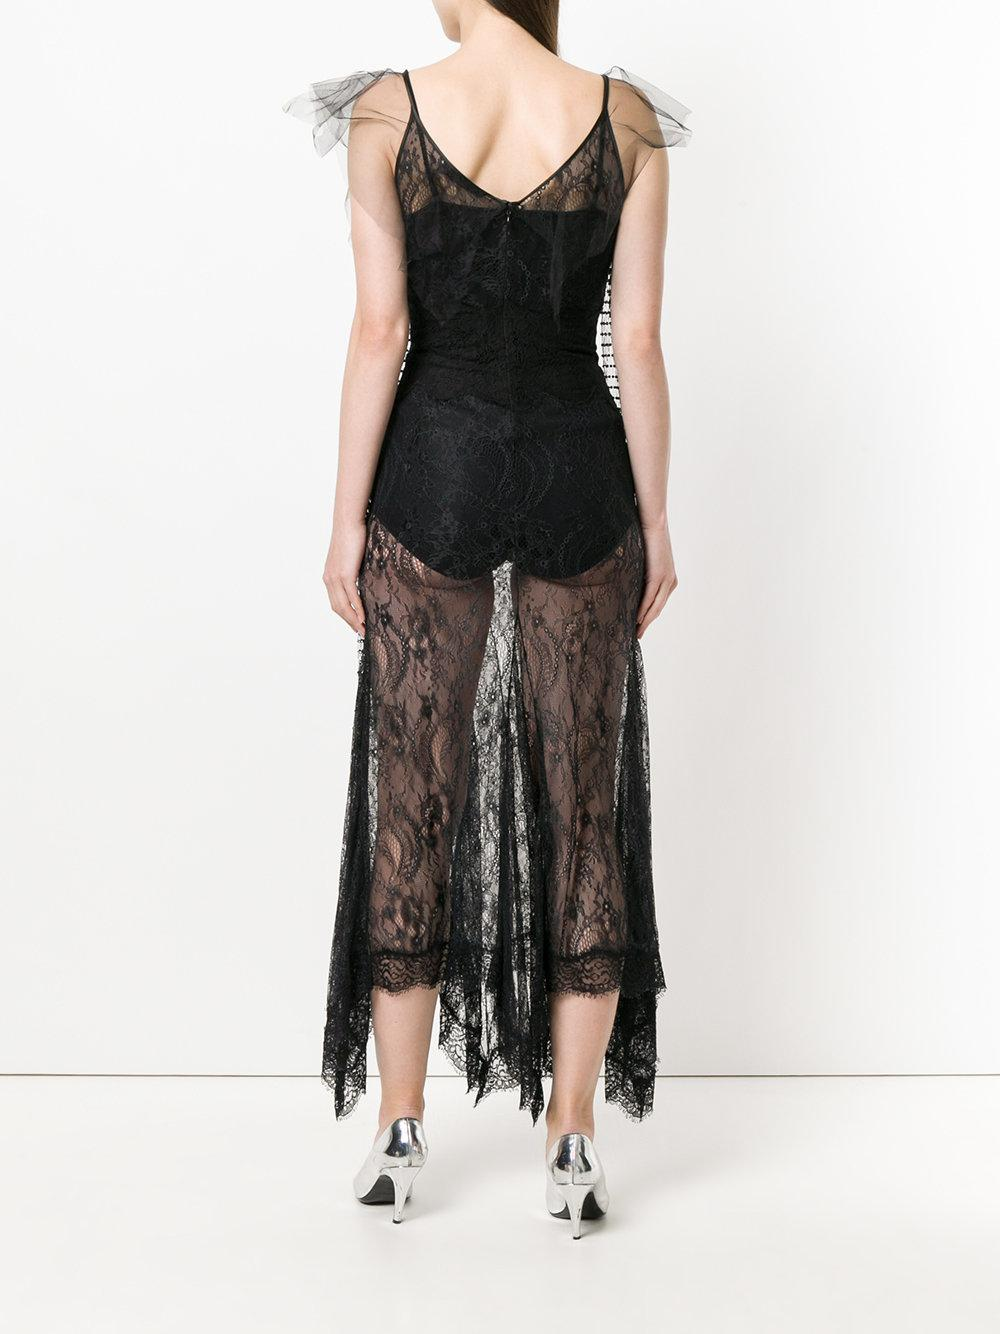 Free Shipping Cheap Online embellished sheer lace midi dress - Black Amen Manchester Great Sale tFBsz